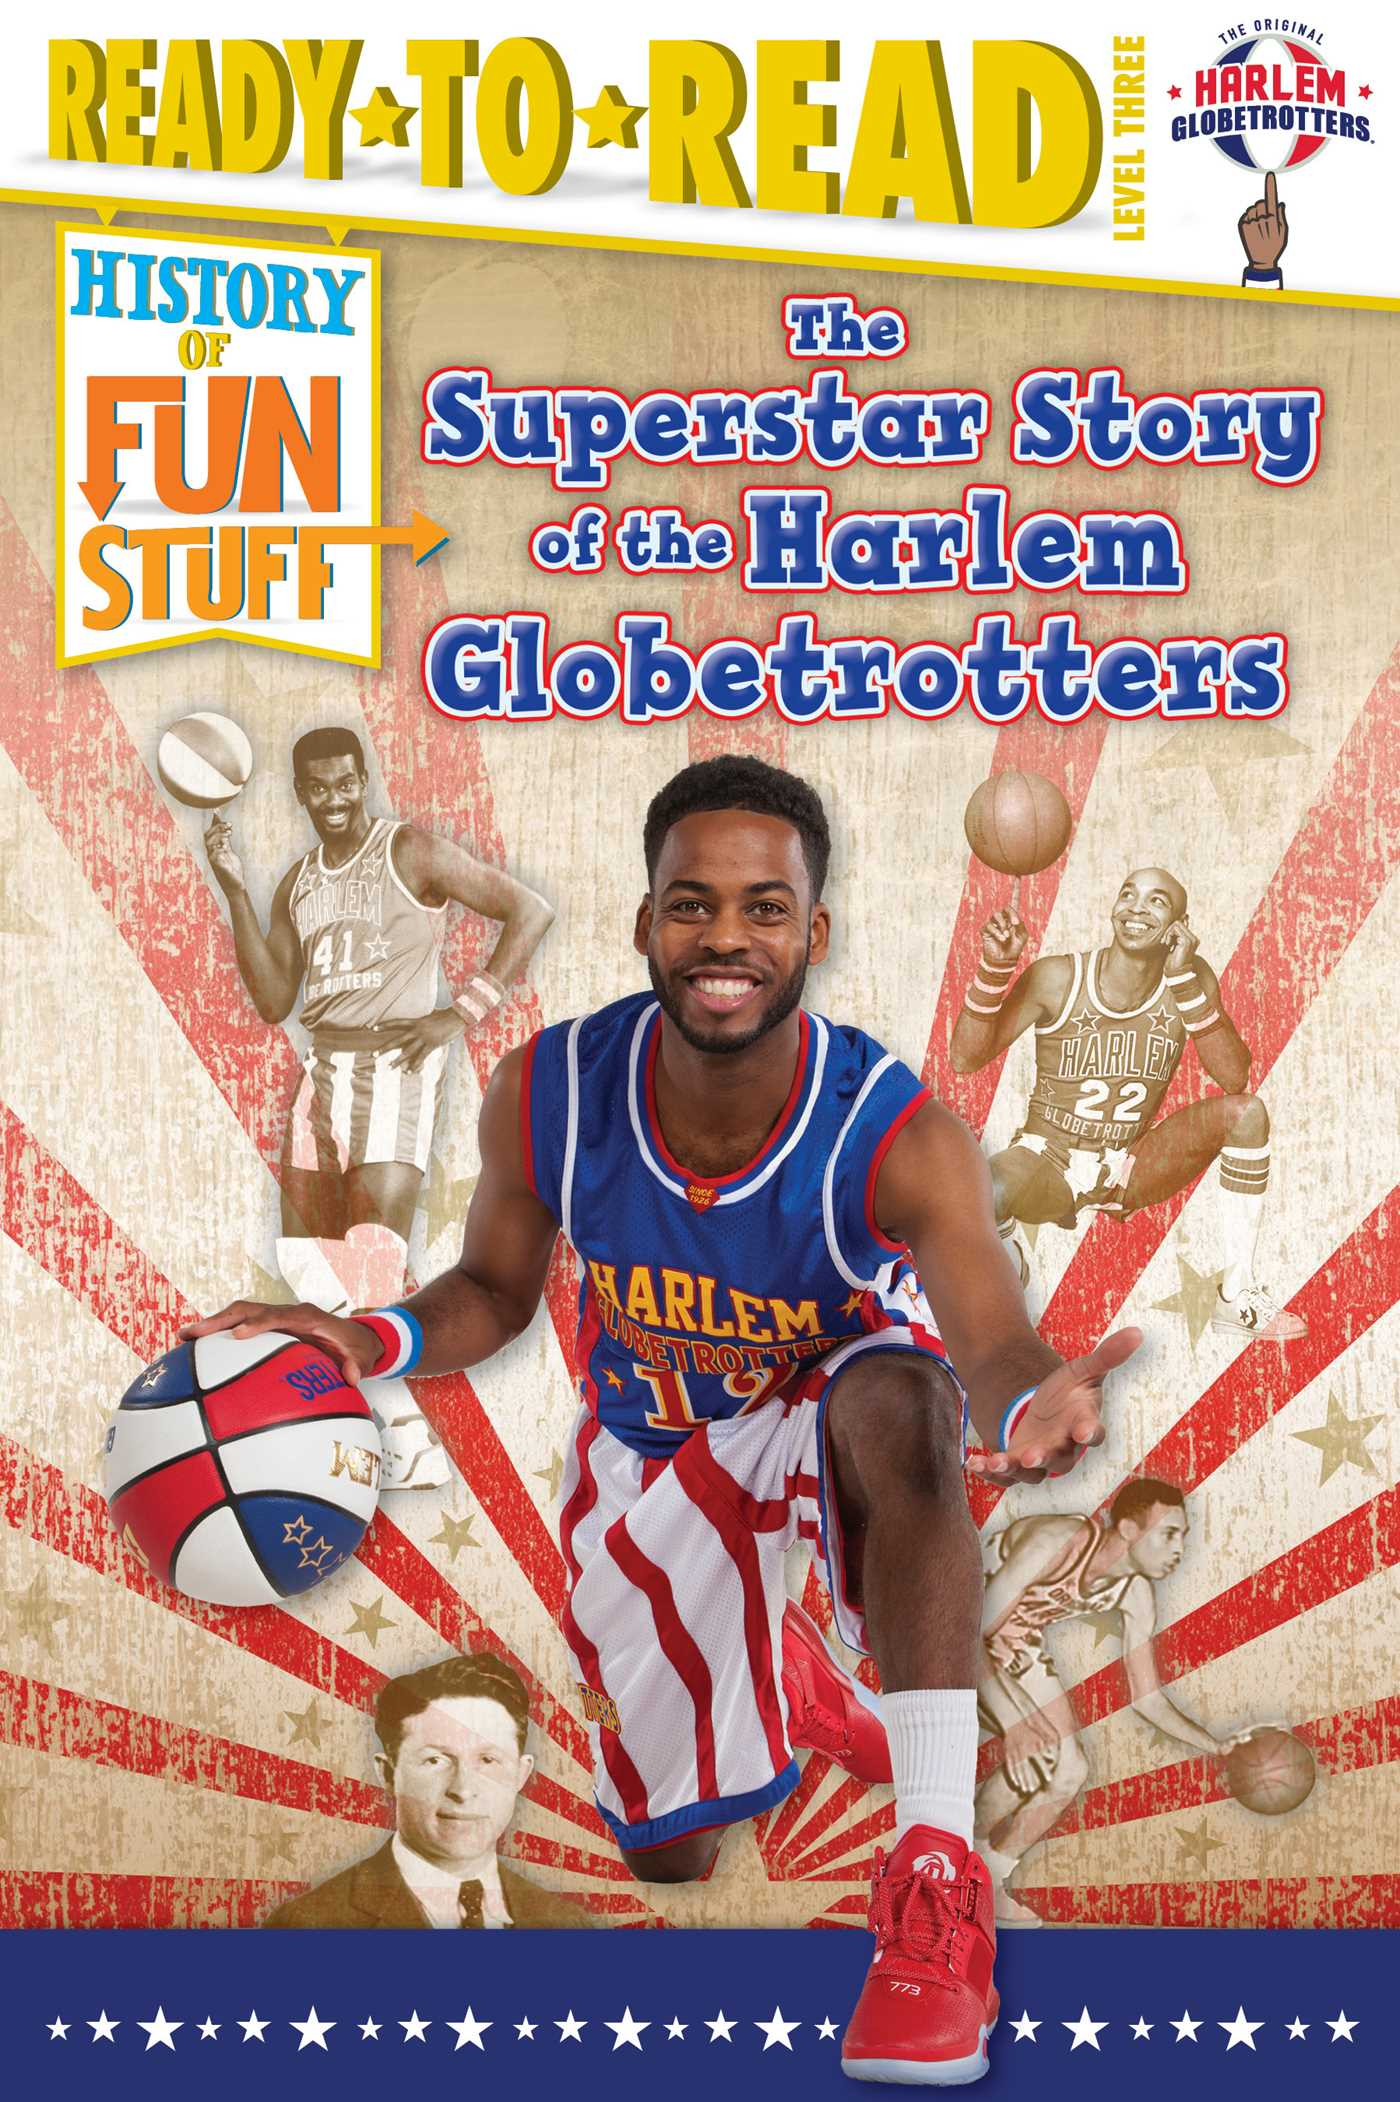 The superstar story of the harlem globetrotters 9781481487481 hr